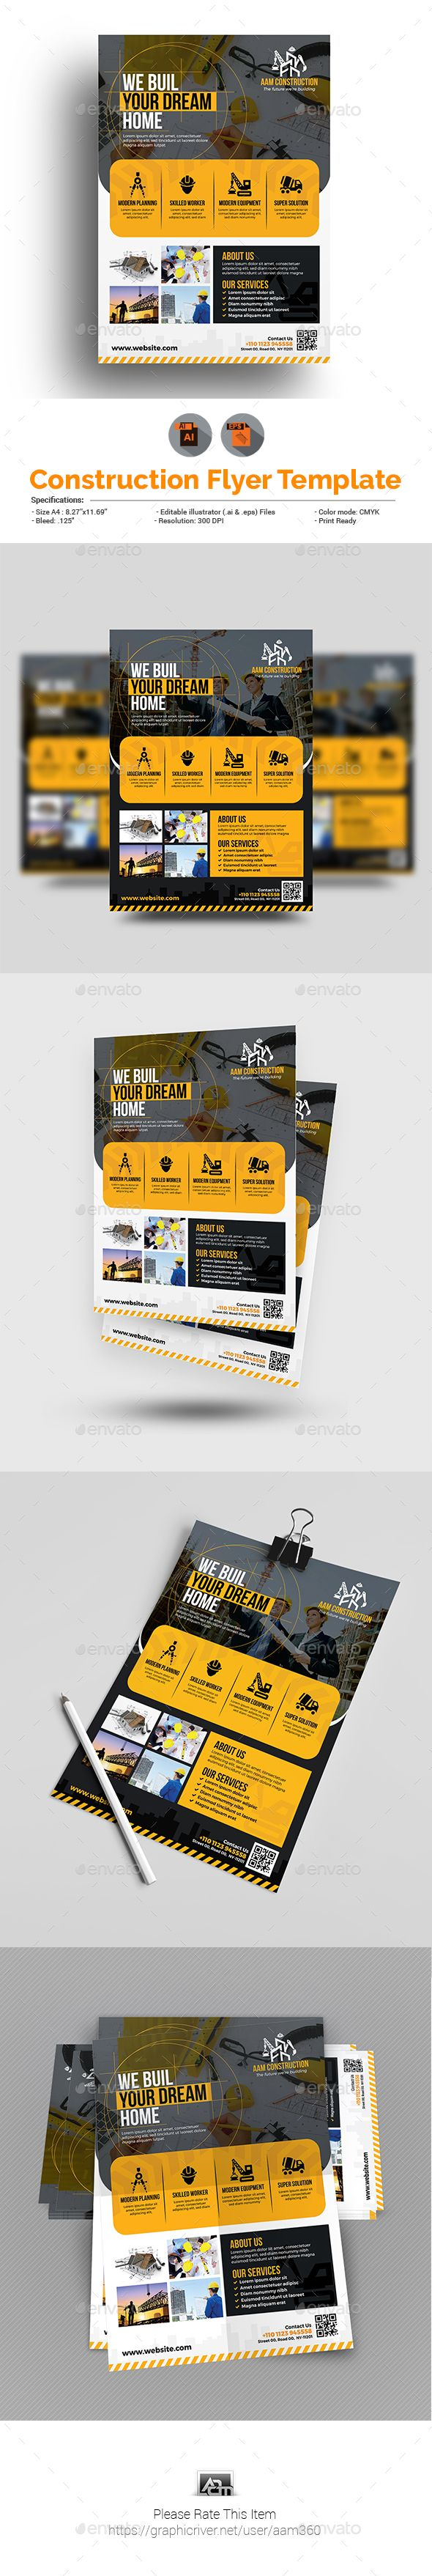 Construction Business Flyer Template - Corporate Flyers